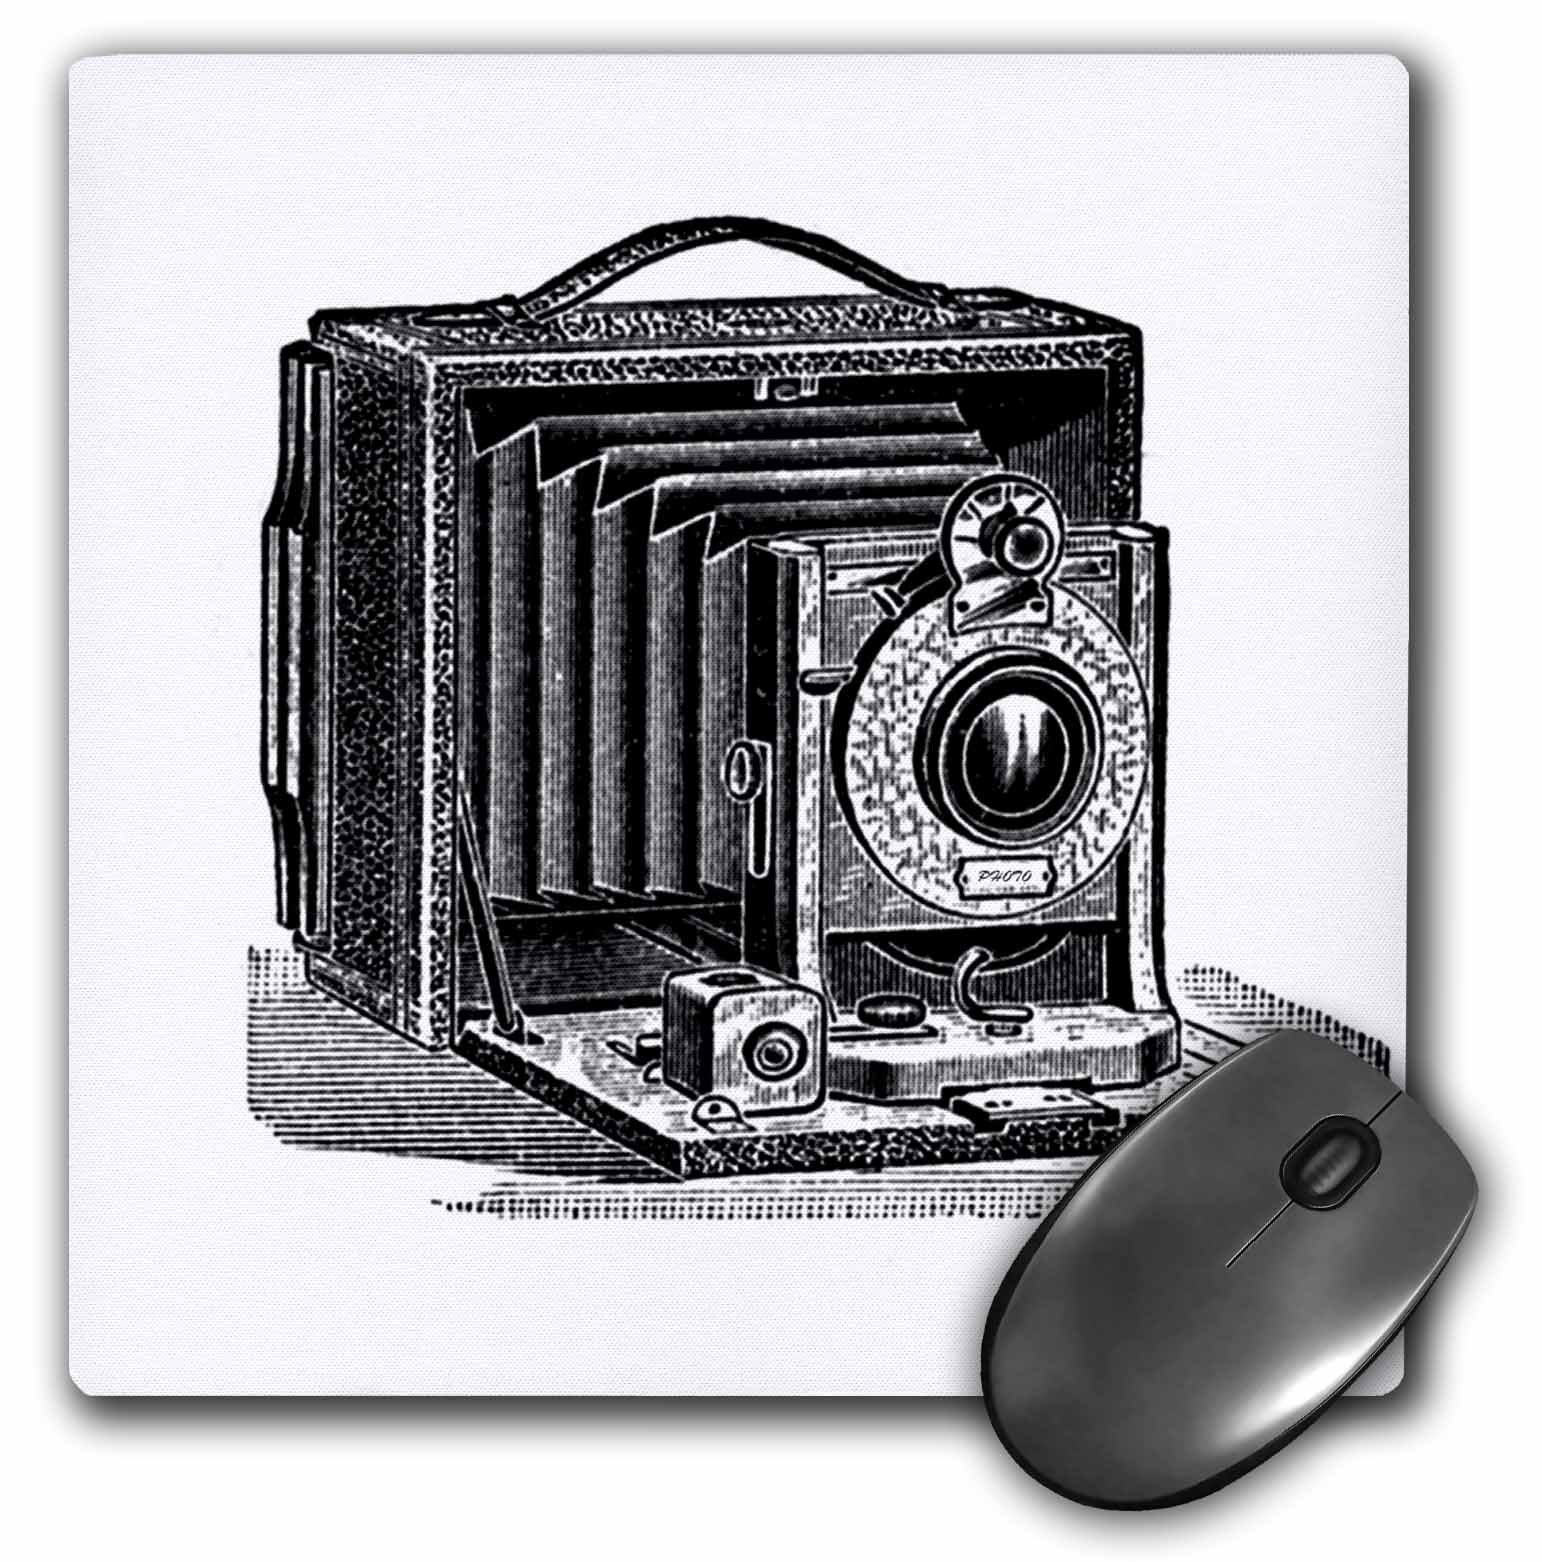 3drose Black and White Vintage Camera Ink and Pen Drawing Print Old-Fashioned Photography Photographer - Mouse Pad